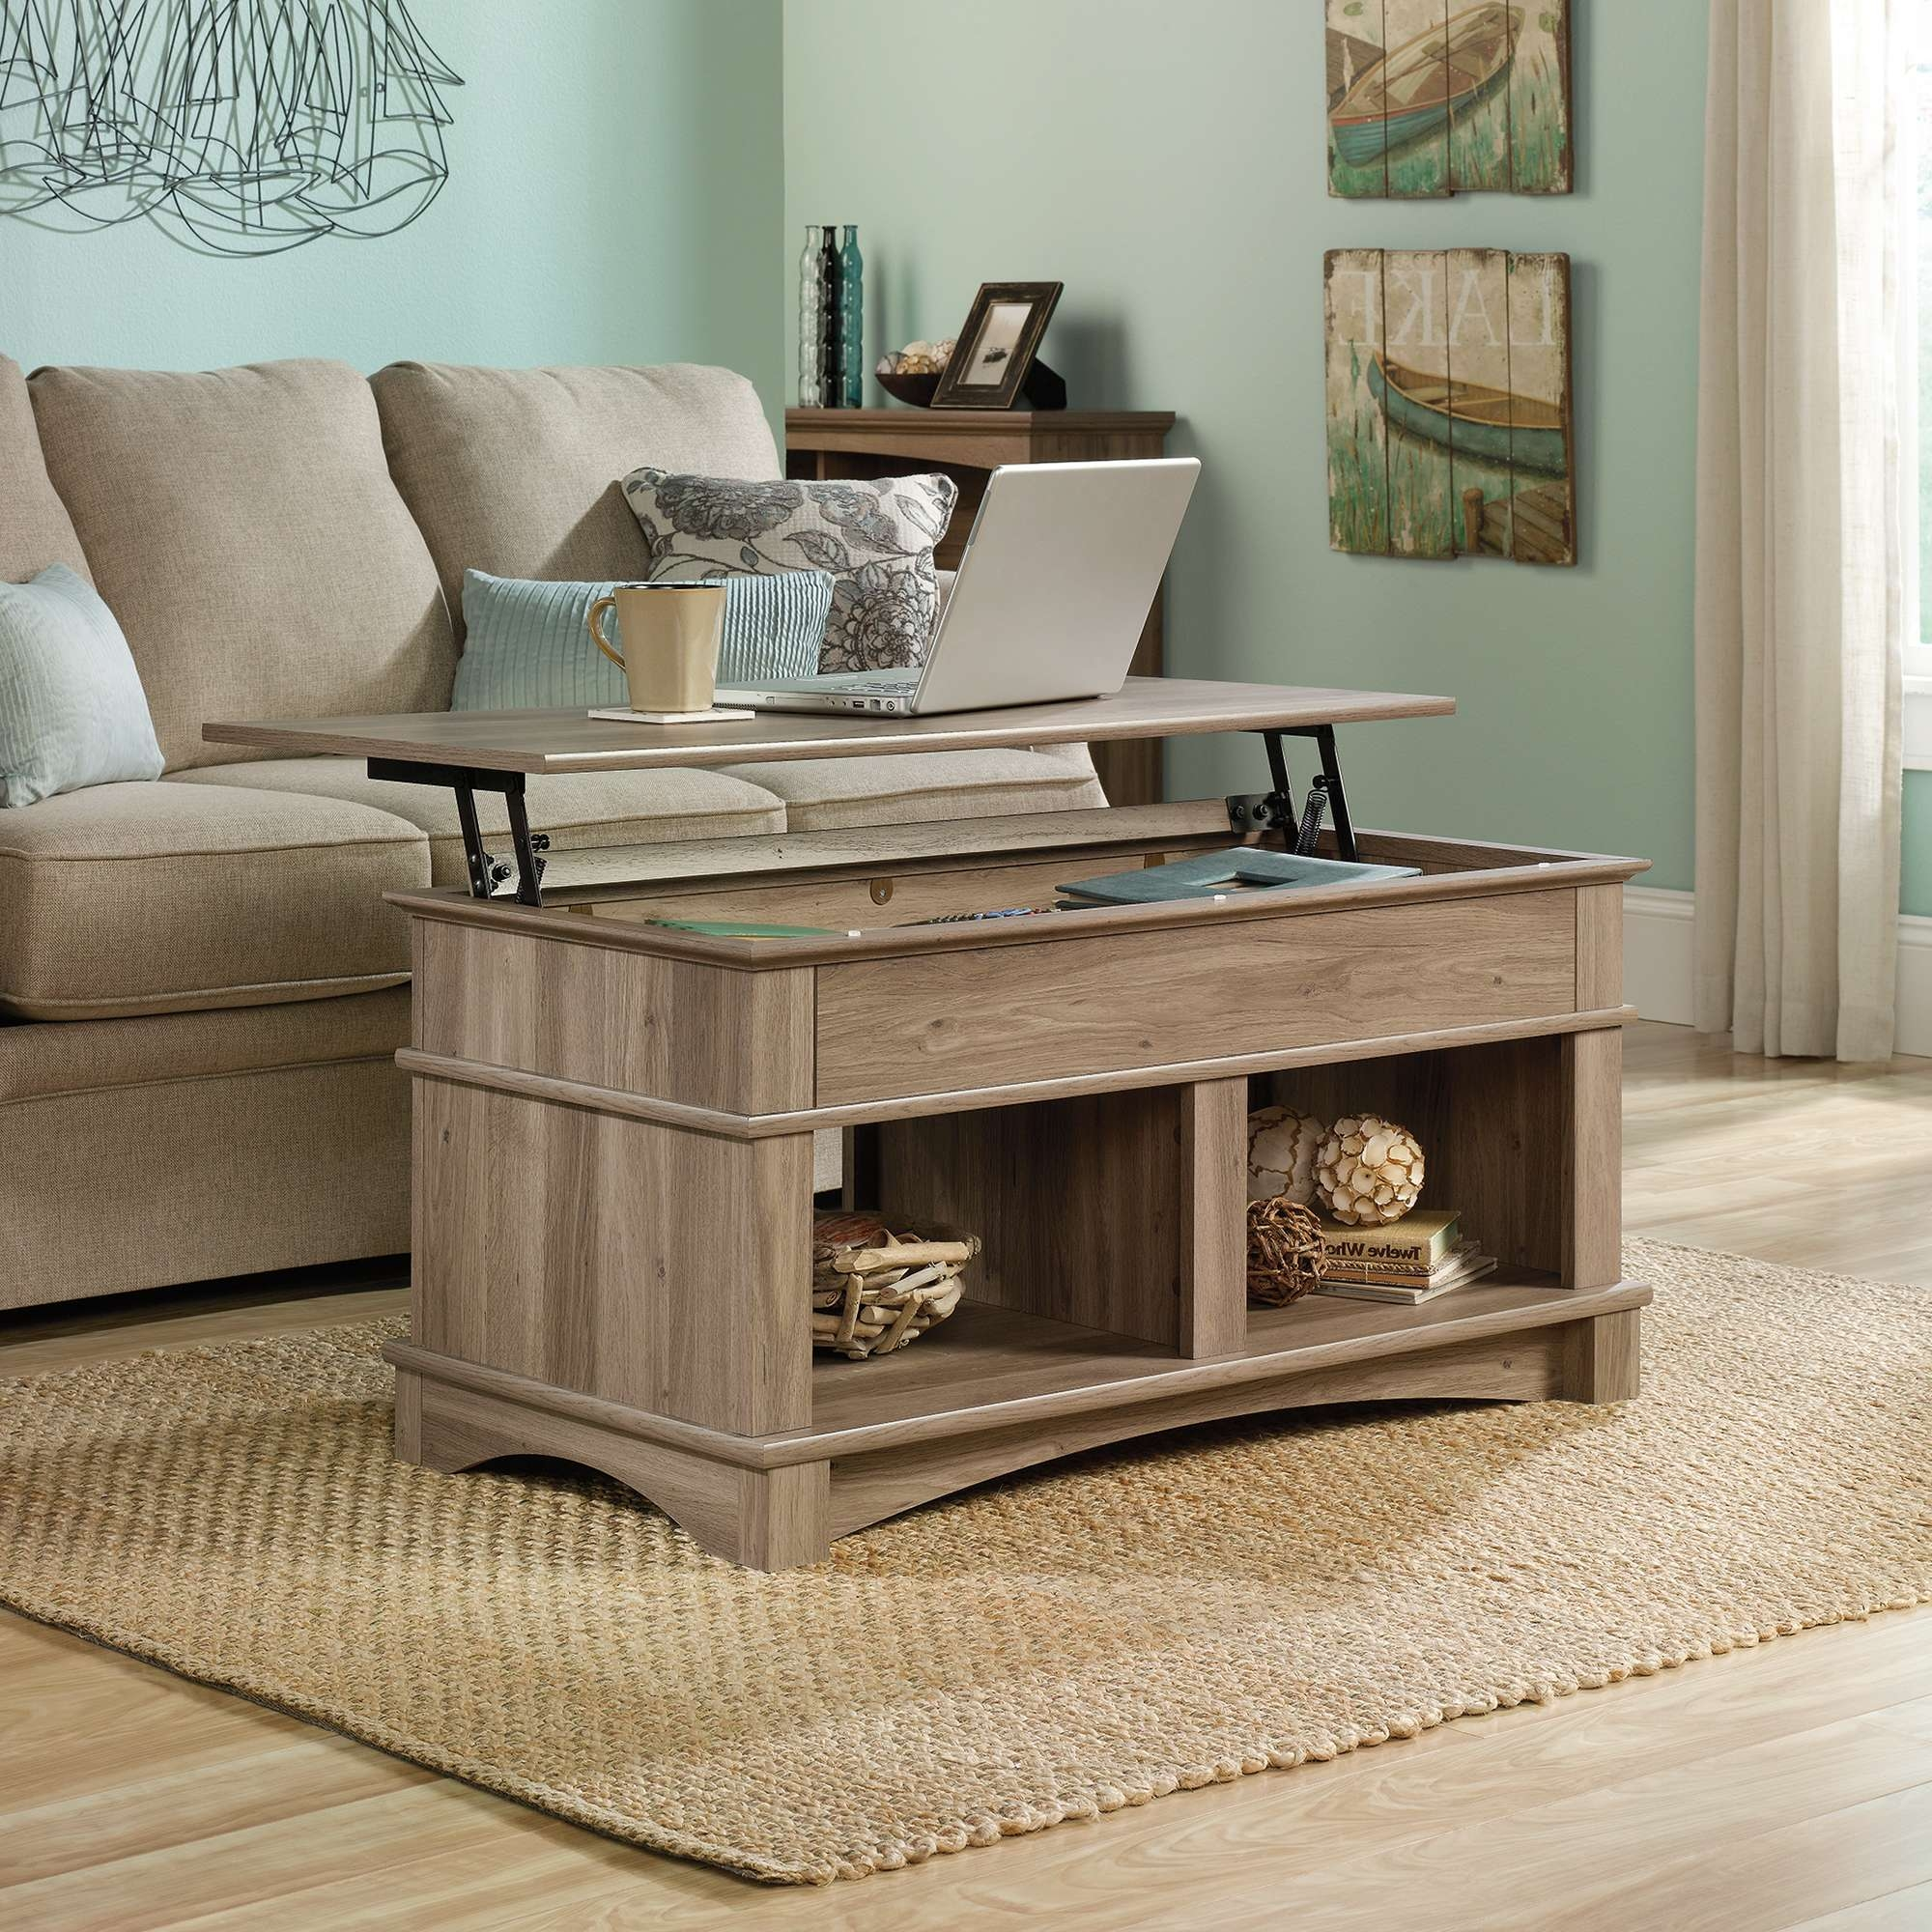 Lift Top Coffee Table (View 8 of 20)